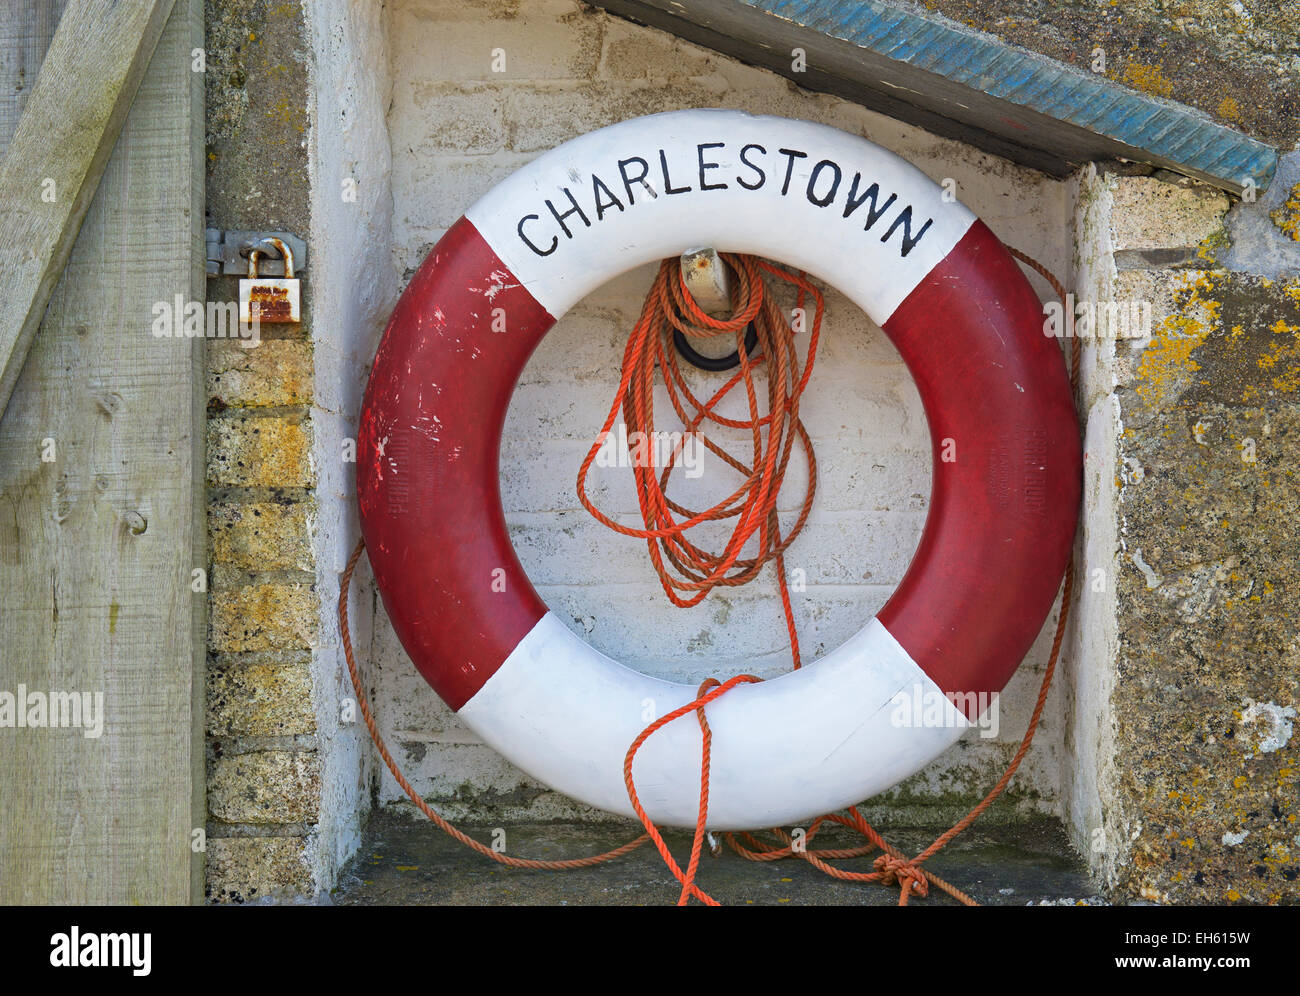 Lifebuoy at Charlestown, Cornwall, England UK - Stock Image